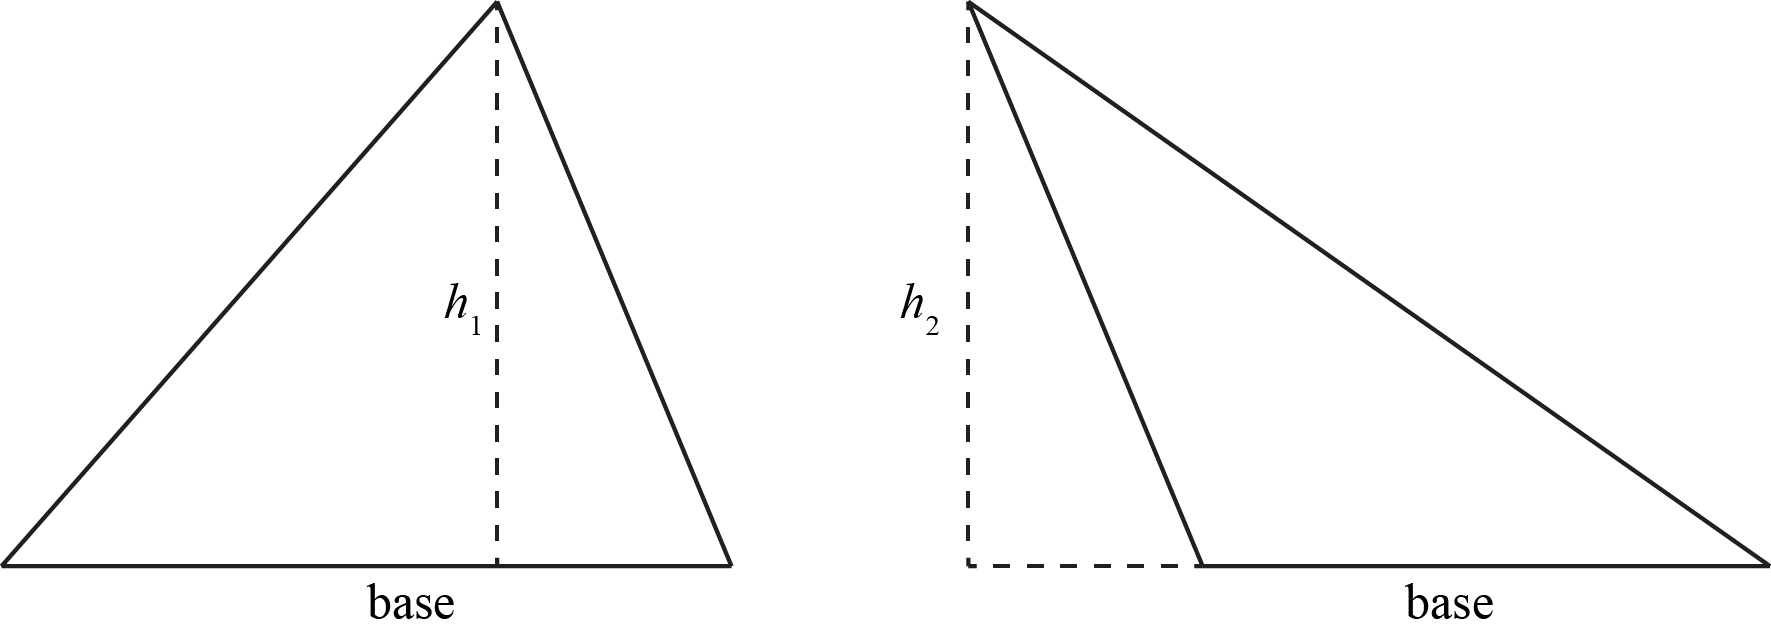 As You Might Imagine, Right Triangles Are Our Best Friends, Because Two Of  The Sides Already Are Perpendicular So One Of The Legs Is The Base,